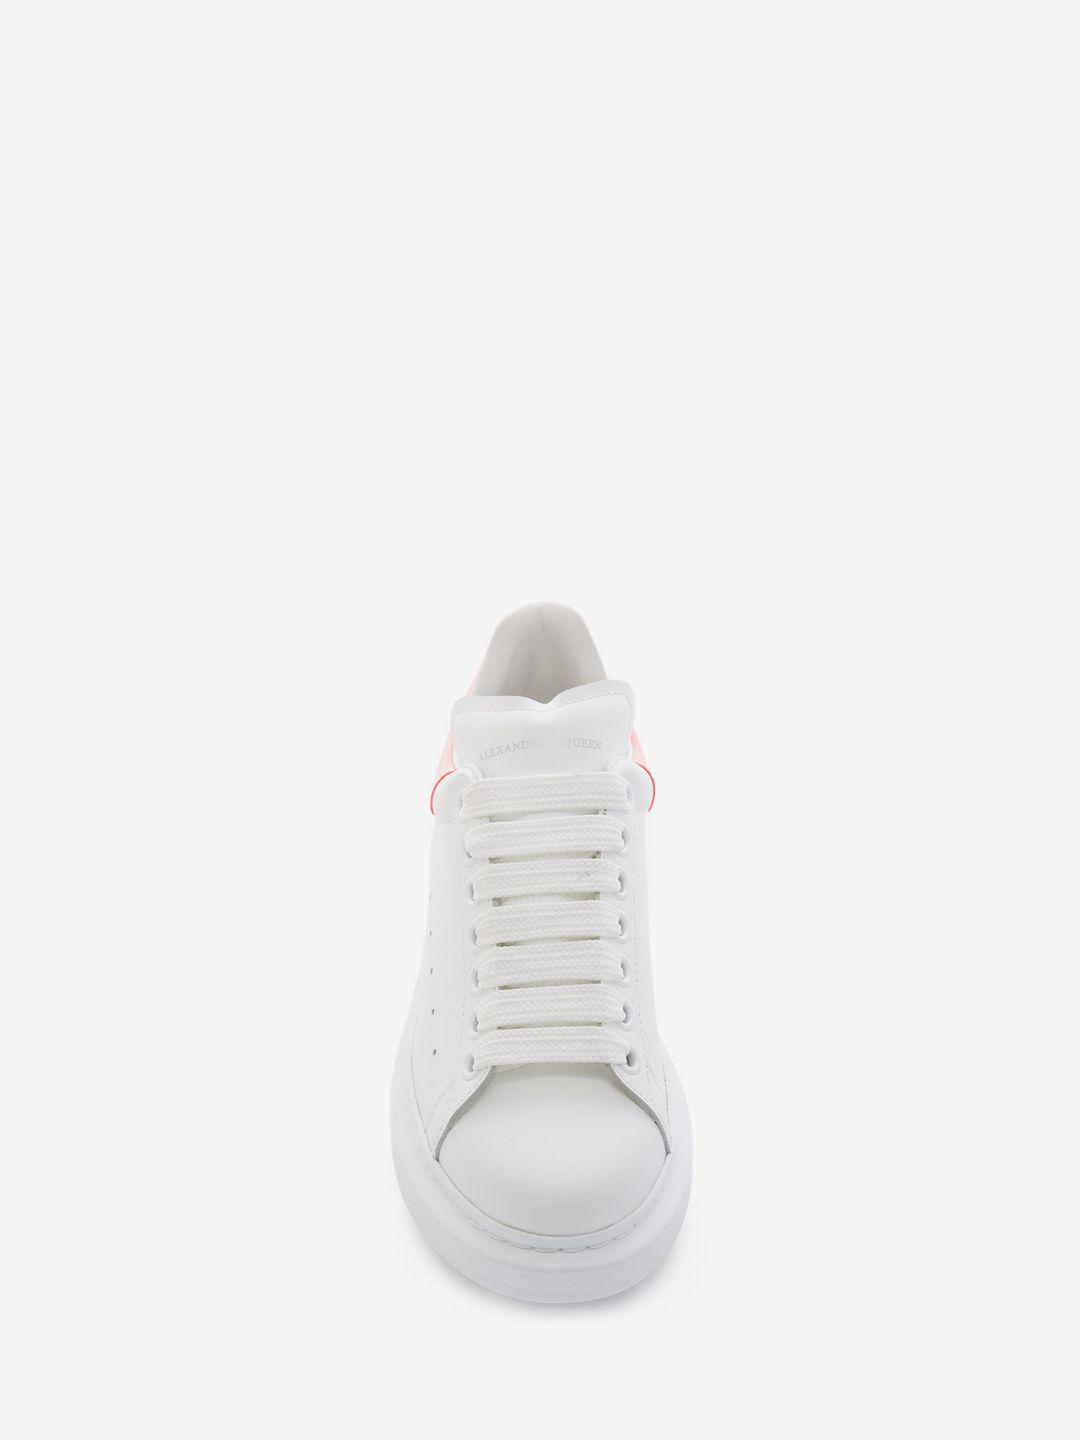 Alexander McQueen Leather Oversized Sneaker in Neon Coral (White)